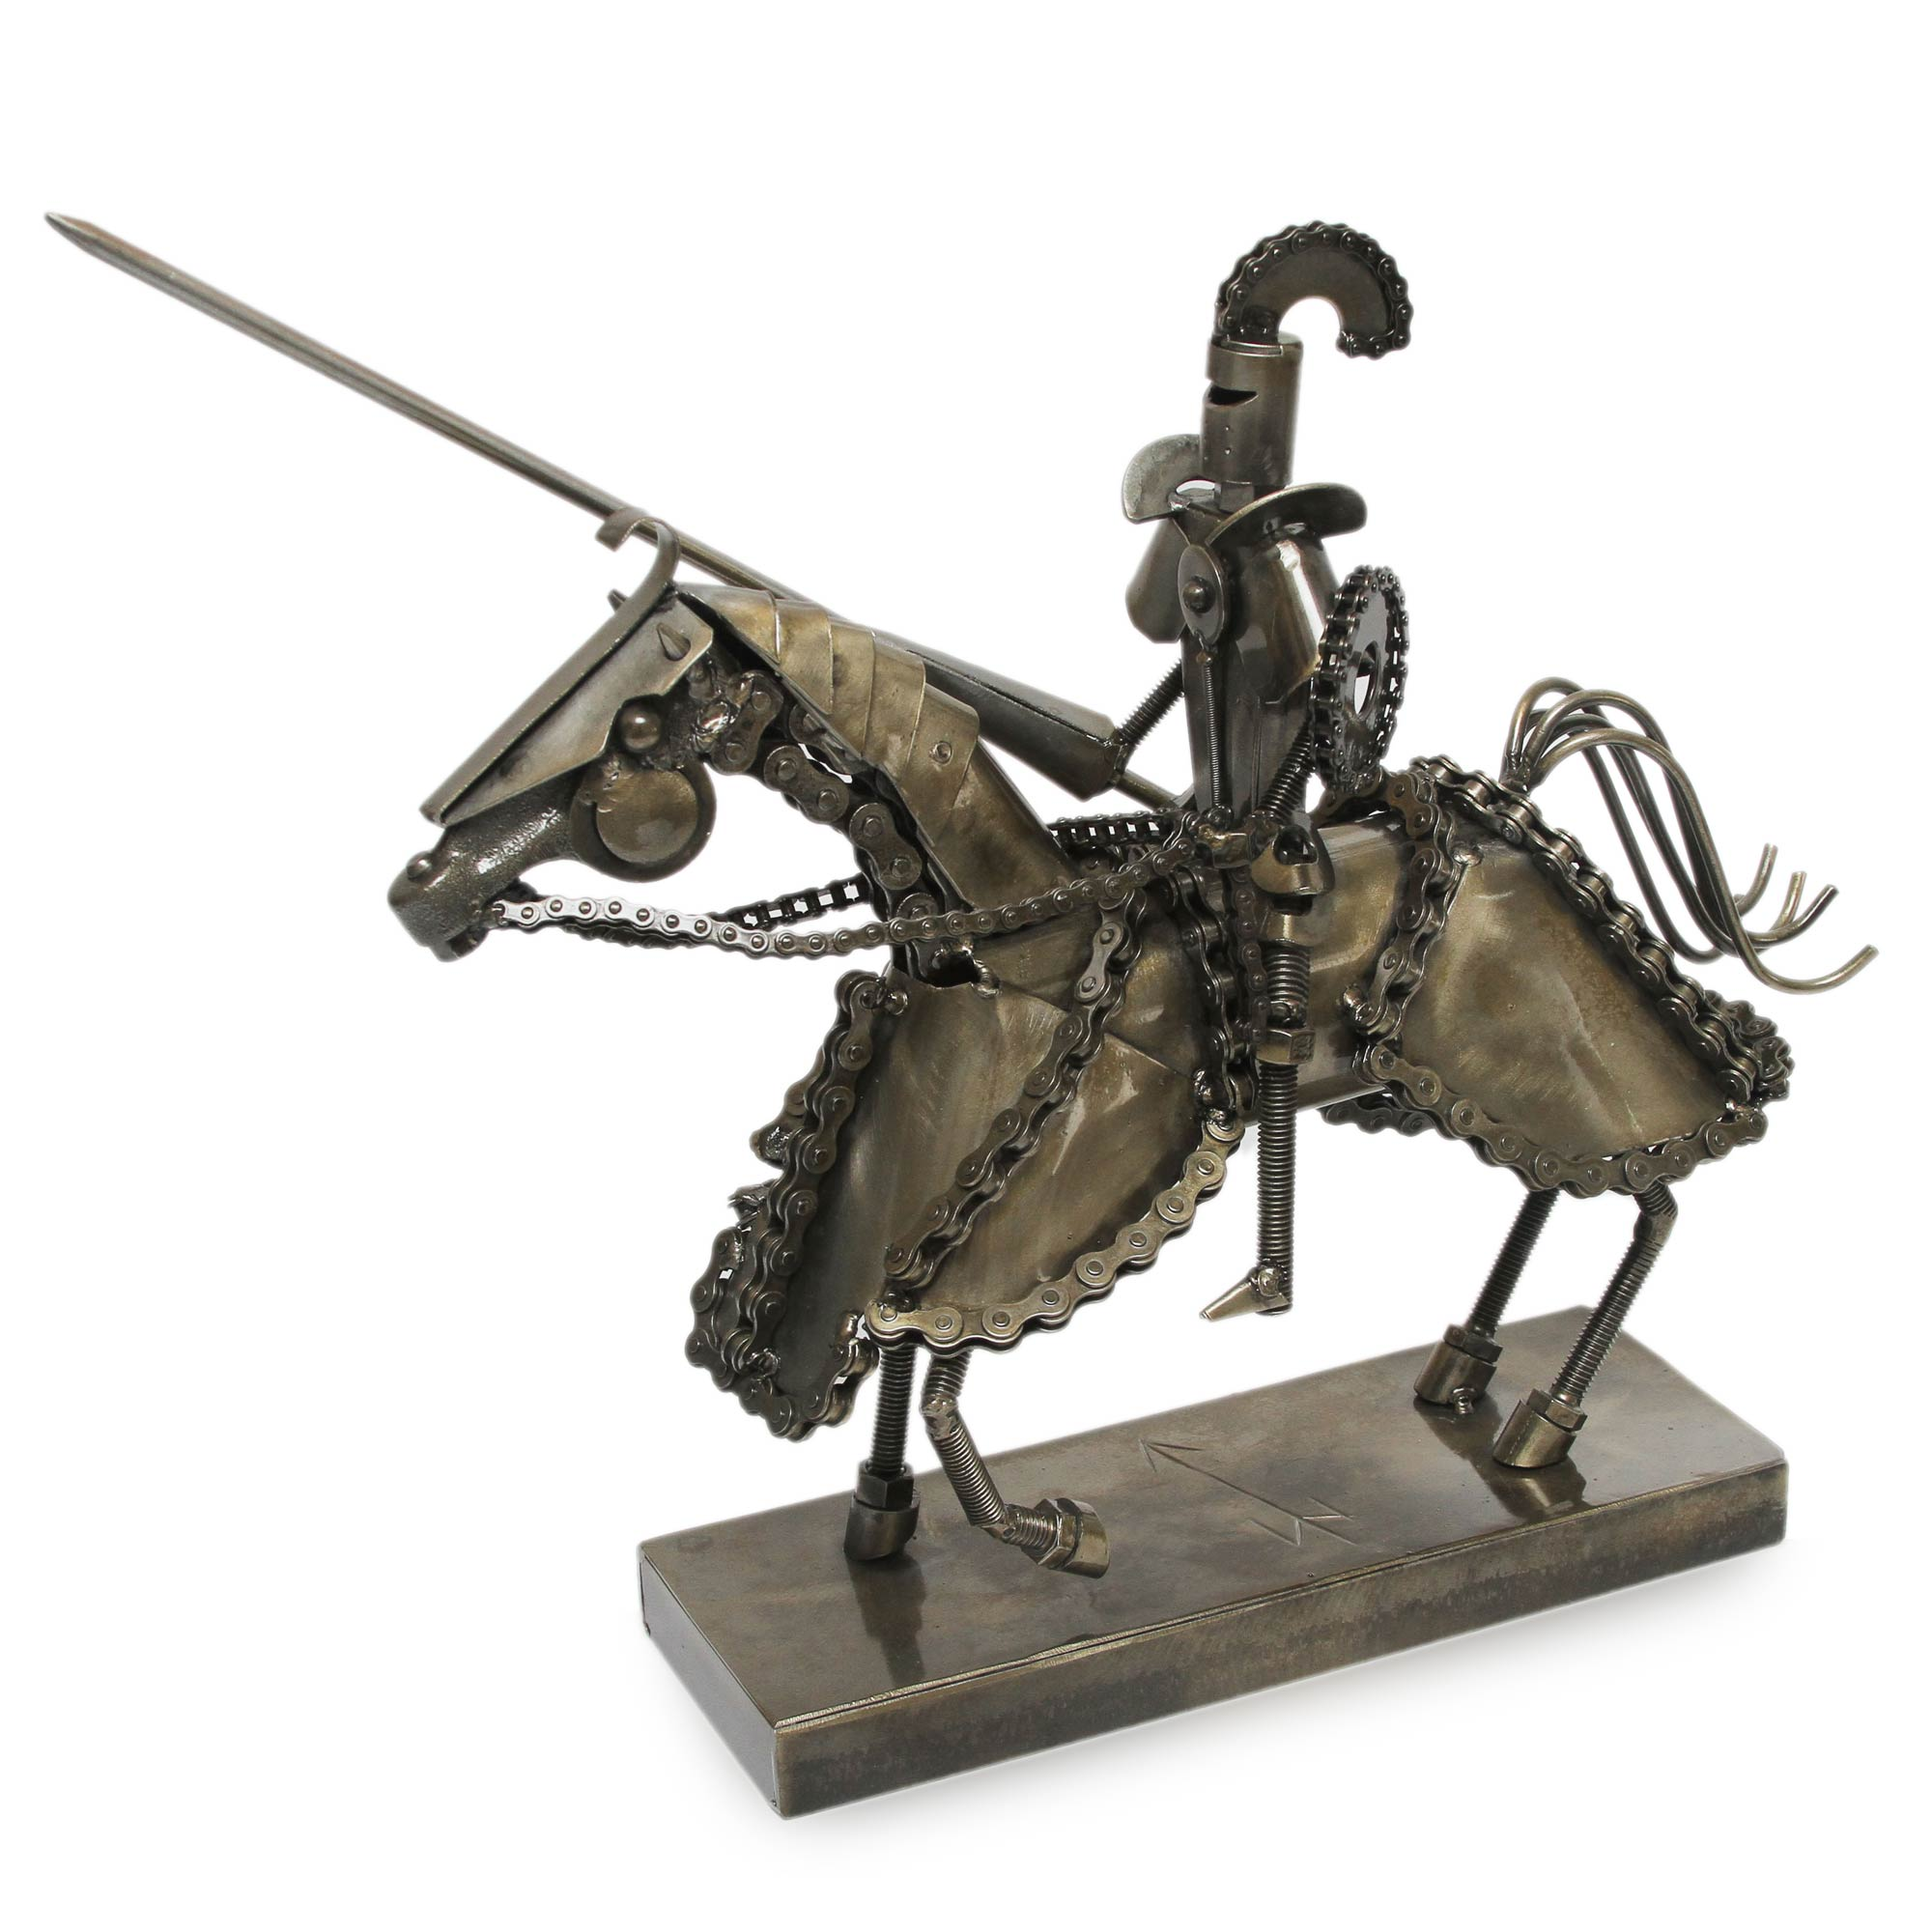 Unicef UK Market | Armored Knight Sculpture of Recycled ...